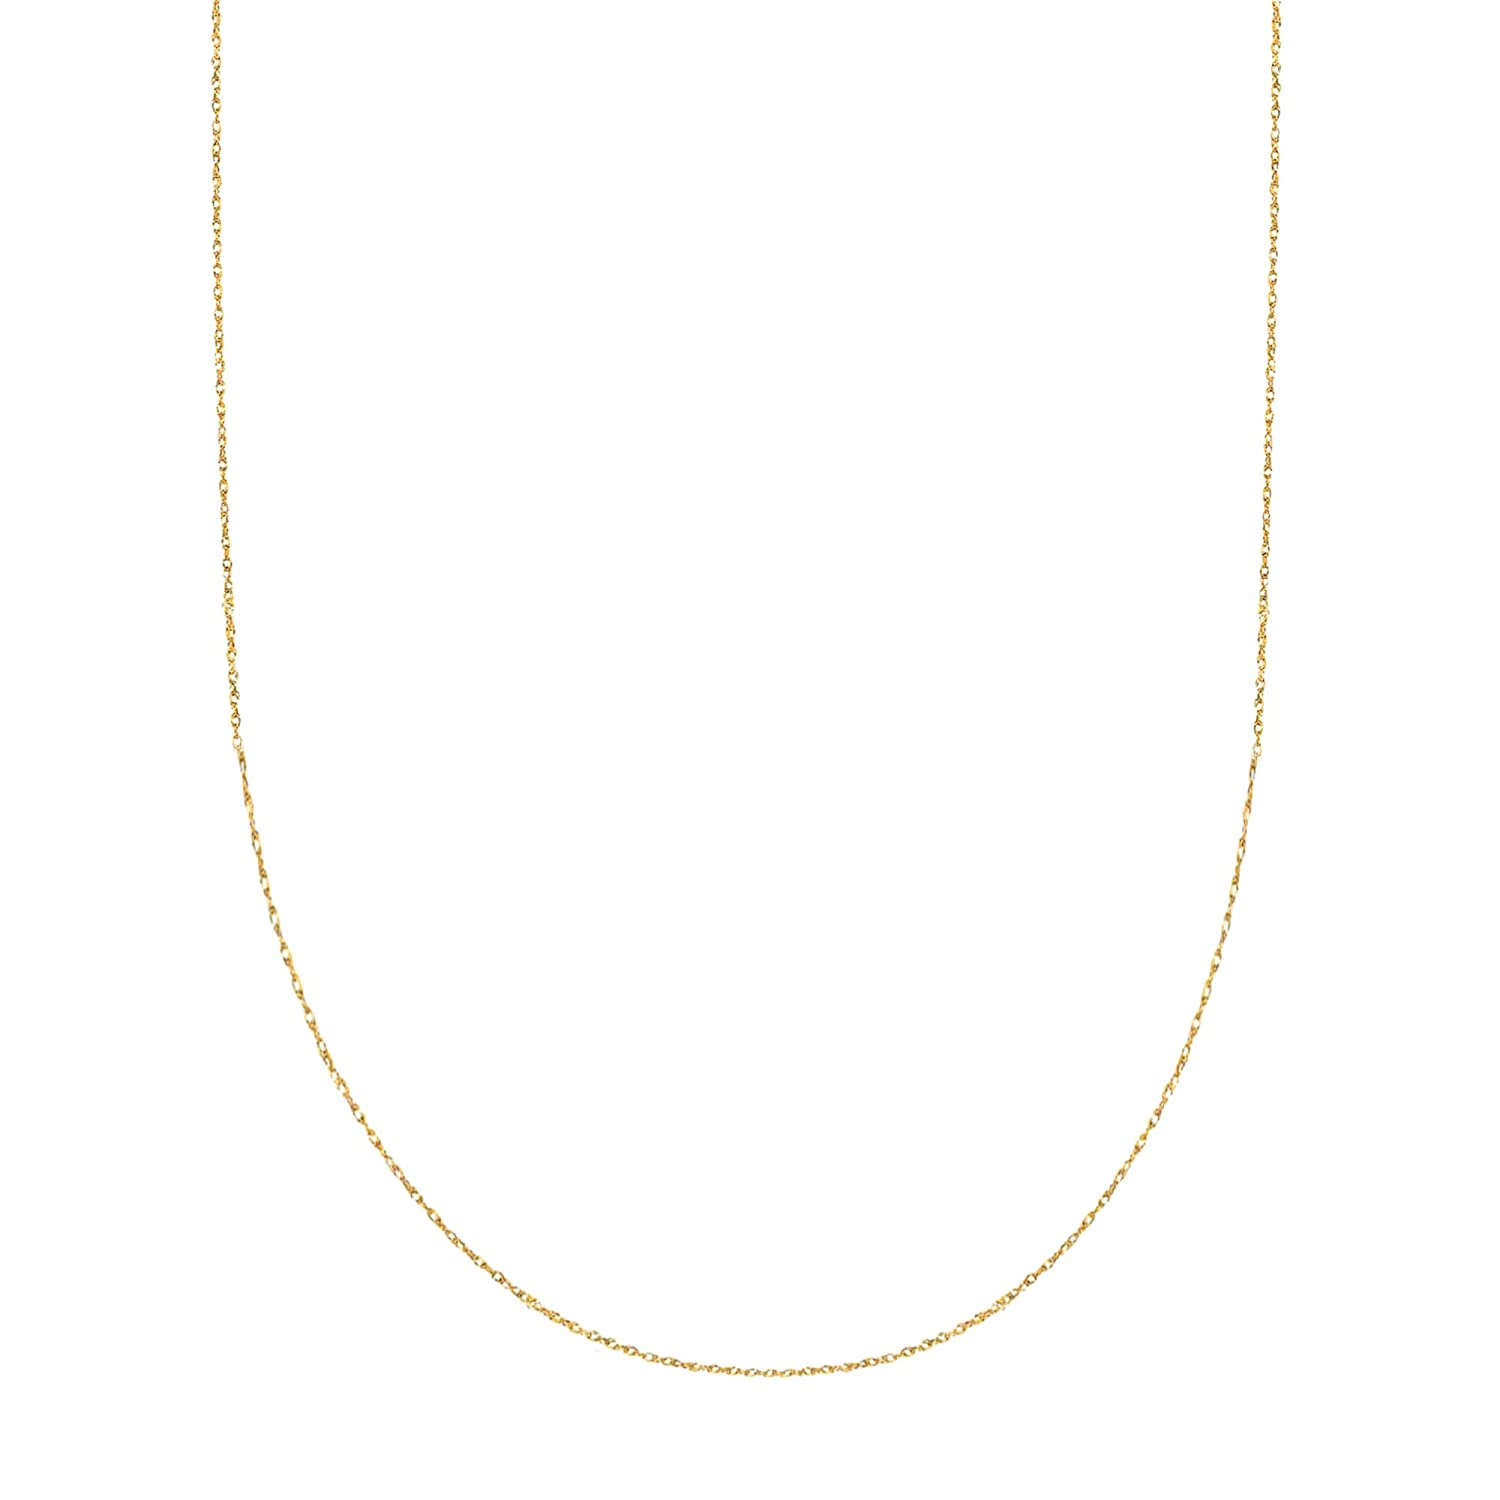 14K Solid Yellow Gold Sturdy Pendant Rope Chain Necklace 18 0.9mm Ritastephens